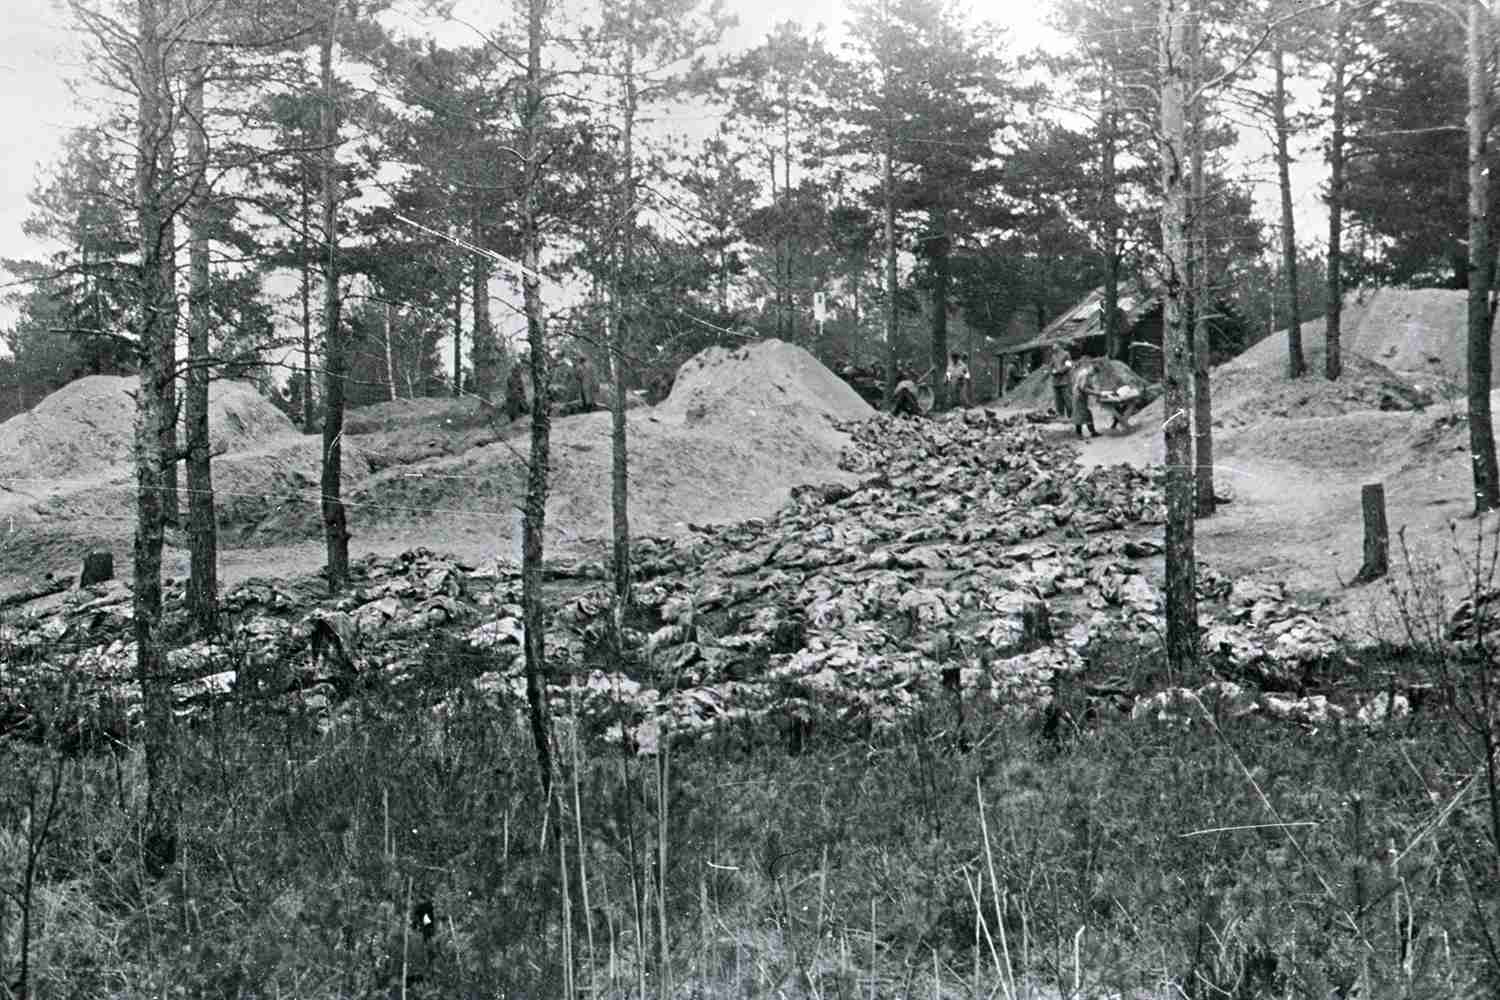 On April, 1943, mass graves containing the remains of 4,400 Polish military officers who had been killed by the Soviet secret police were discovered.